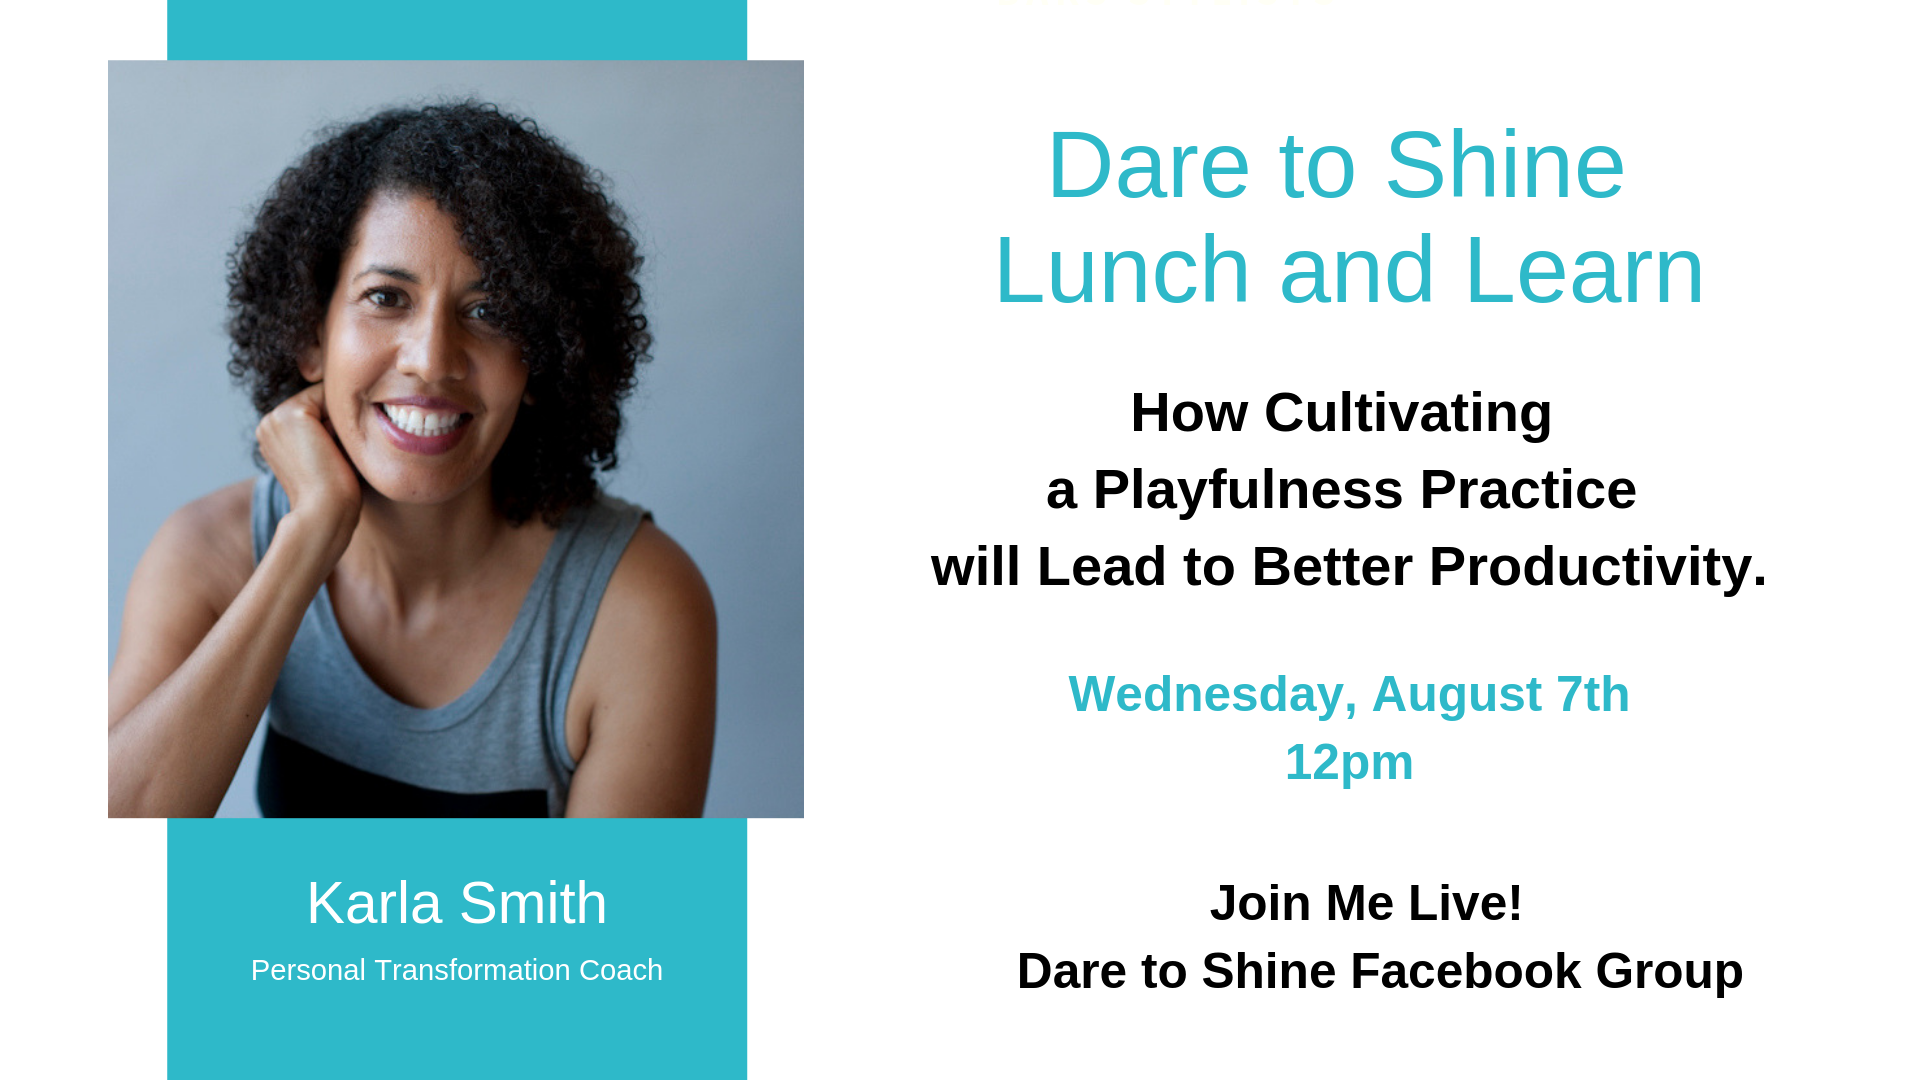 Dare to Shine Lunch and Learn